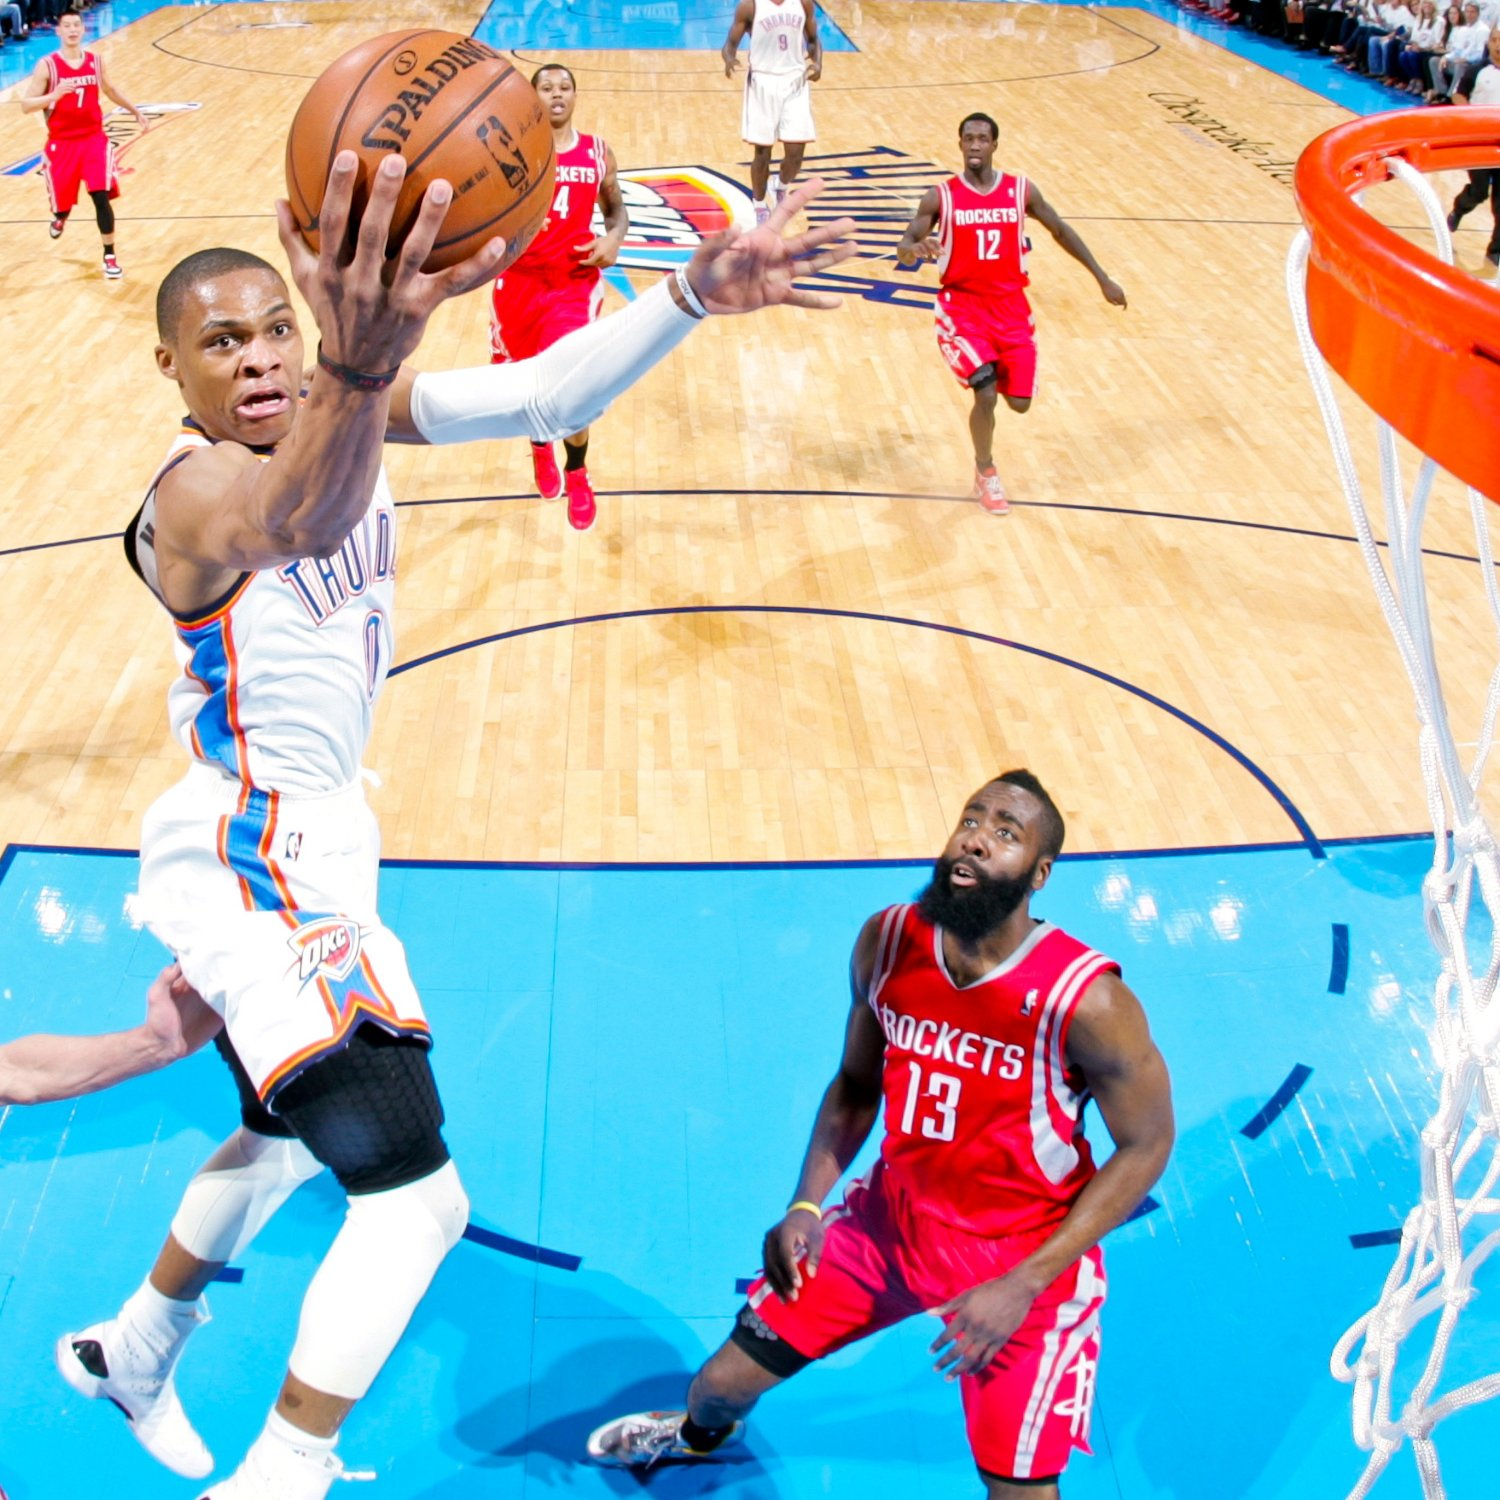 Houston Rockets Vs Okc: Houston Rockets Vs. OKC Thunder: Game 2 Score, Highlights